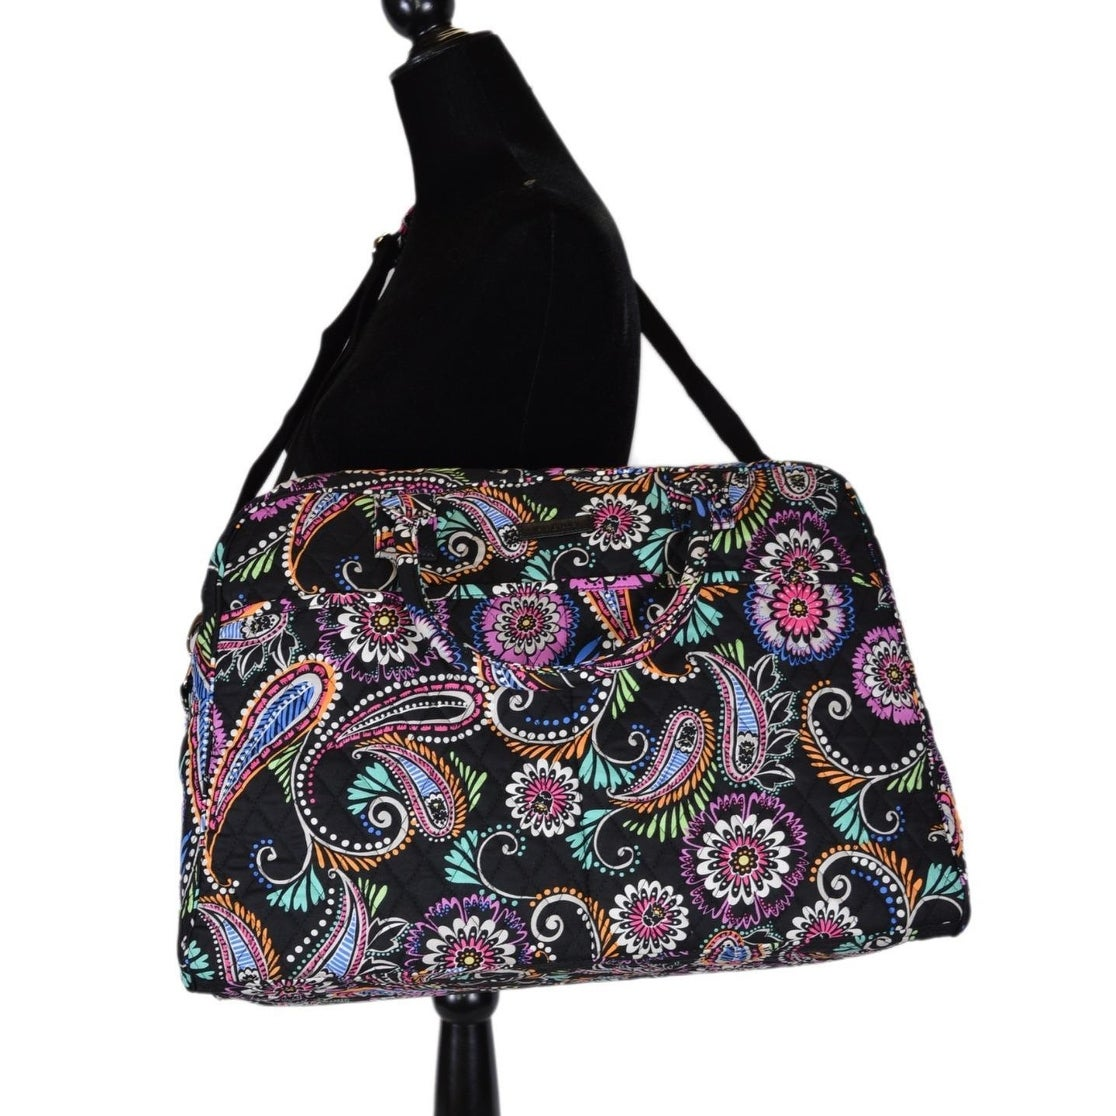 31d87c8994 Shop Vera Bradley BANDANA SWIRL Print Cotton Weekender Duffle Travel Bag  Purse - Free Shipping Today - Overstock - 21219267